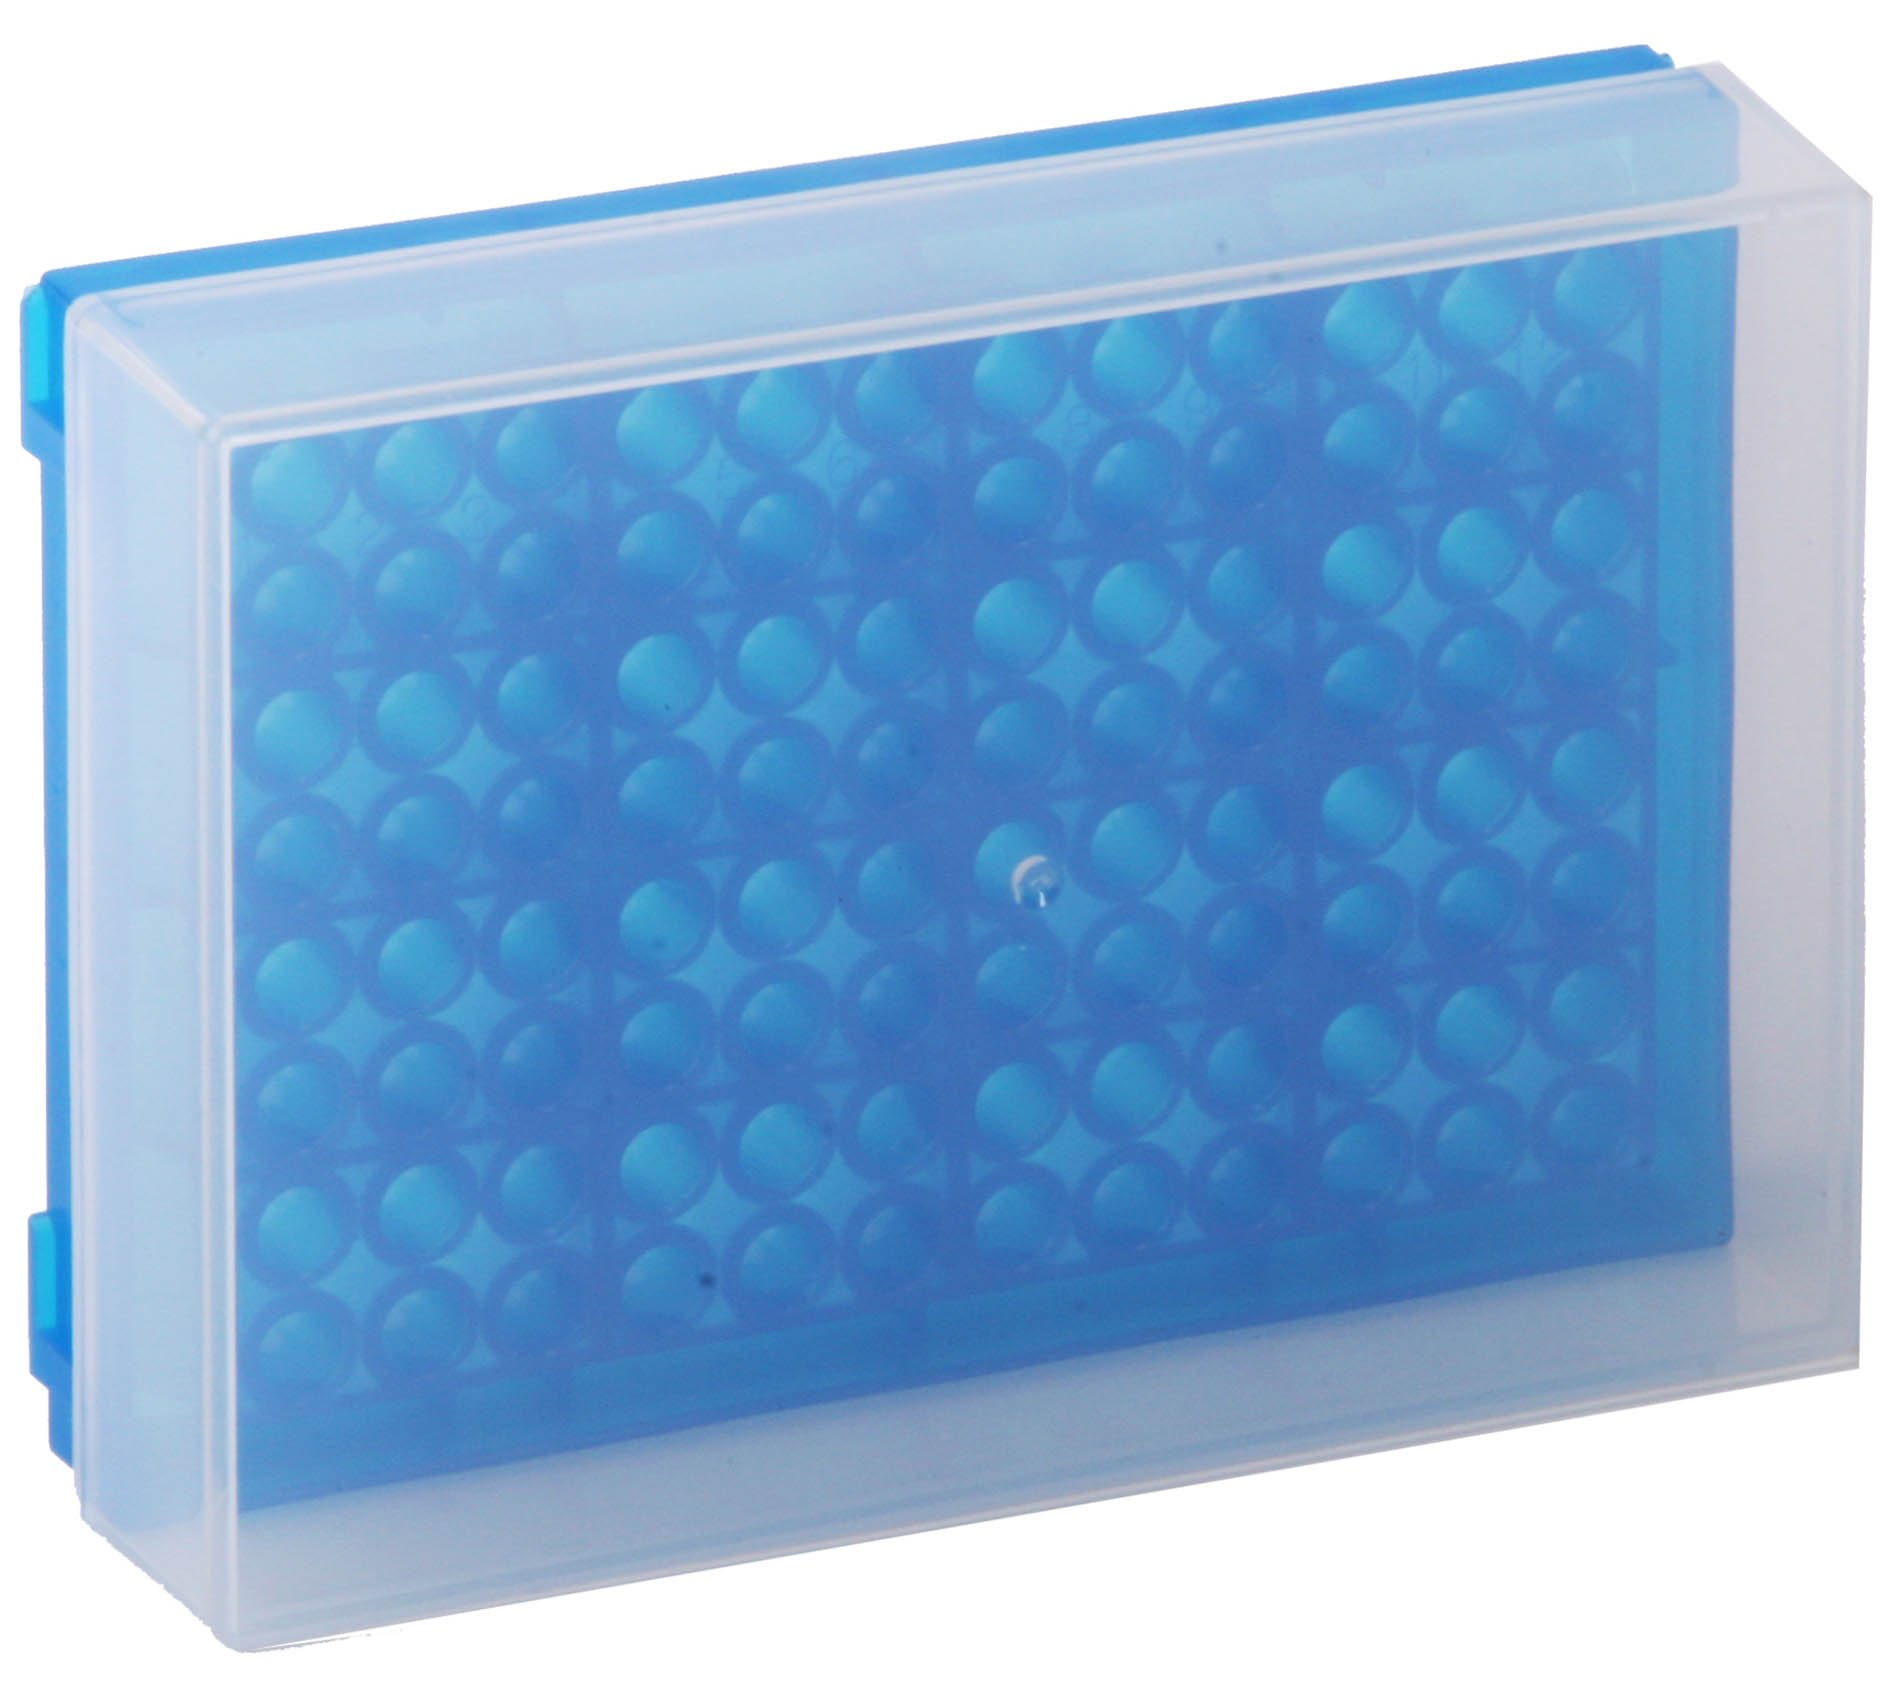 96-Well Preparation Rack with Cover - Fluorescent Blue